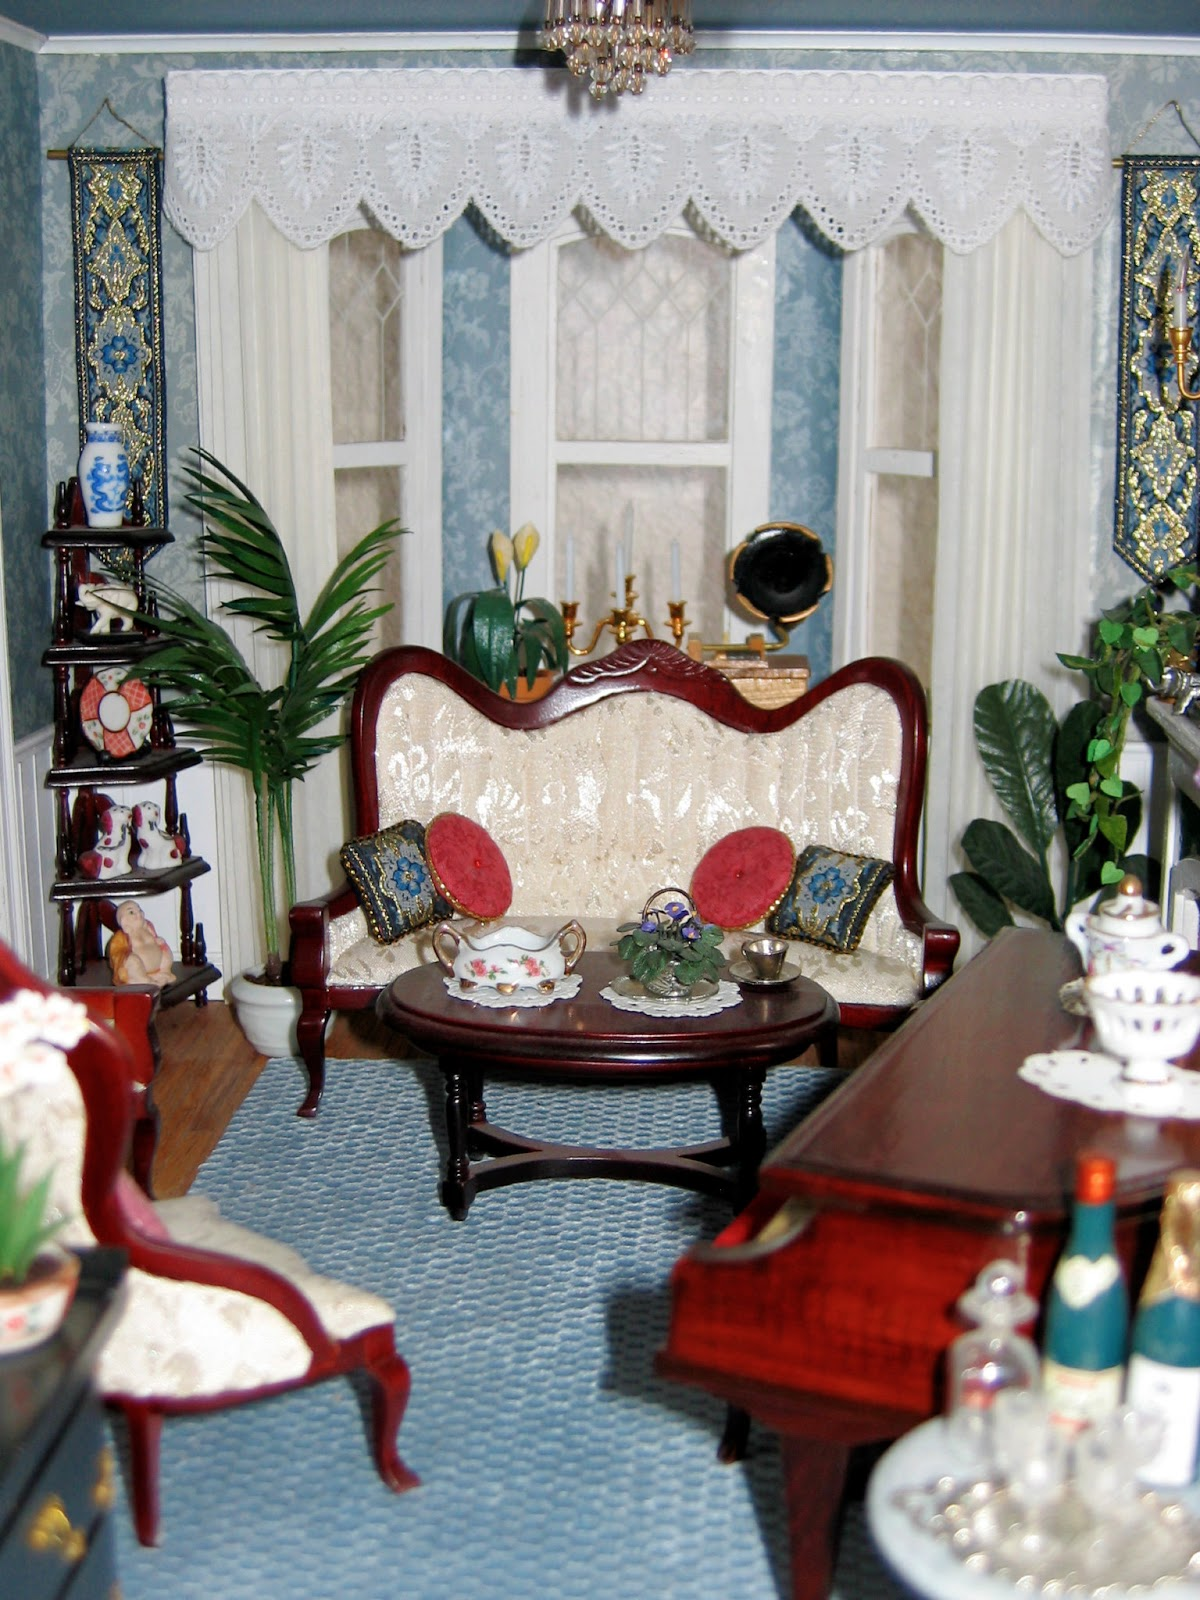 cool 12 scale dollhouse living room set | BluKatKraft: Victorian Dollhouse - Living Room 1:12 scale ...